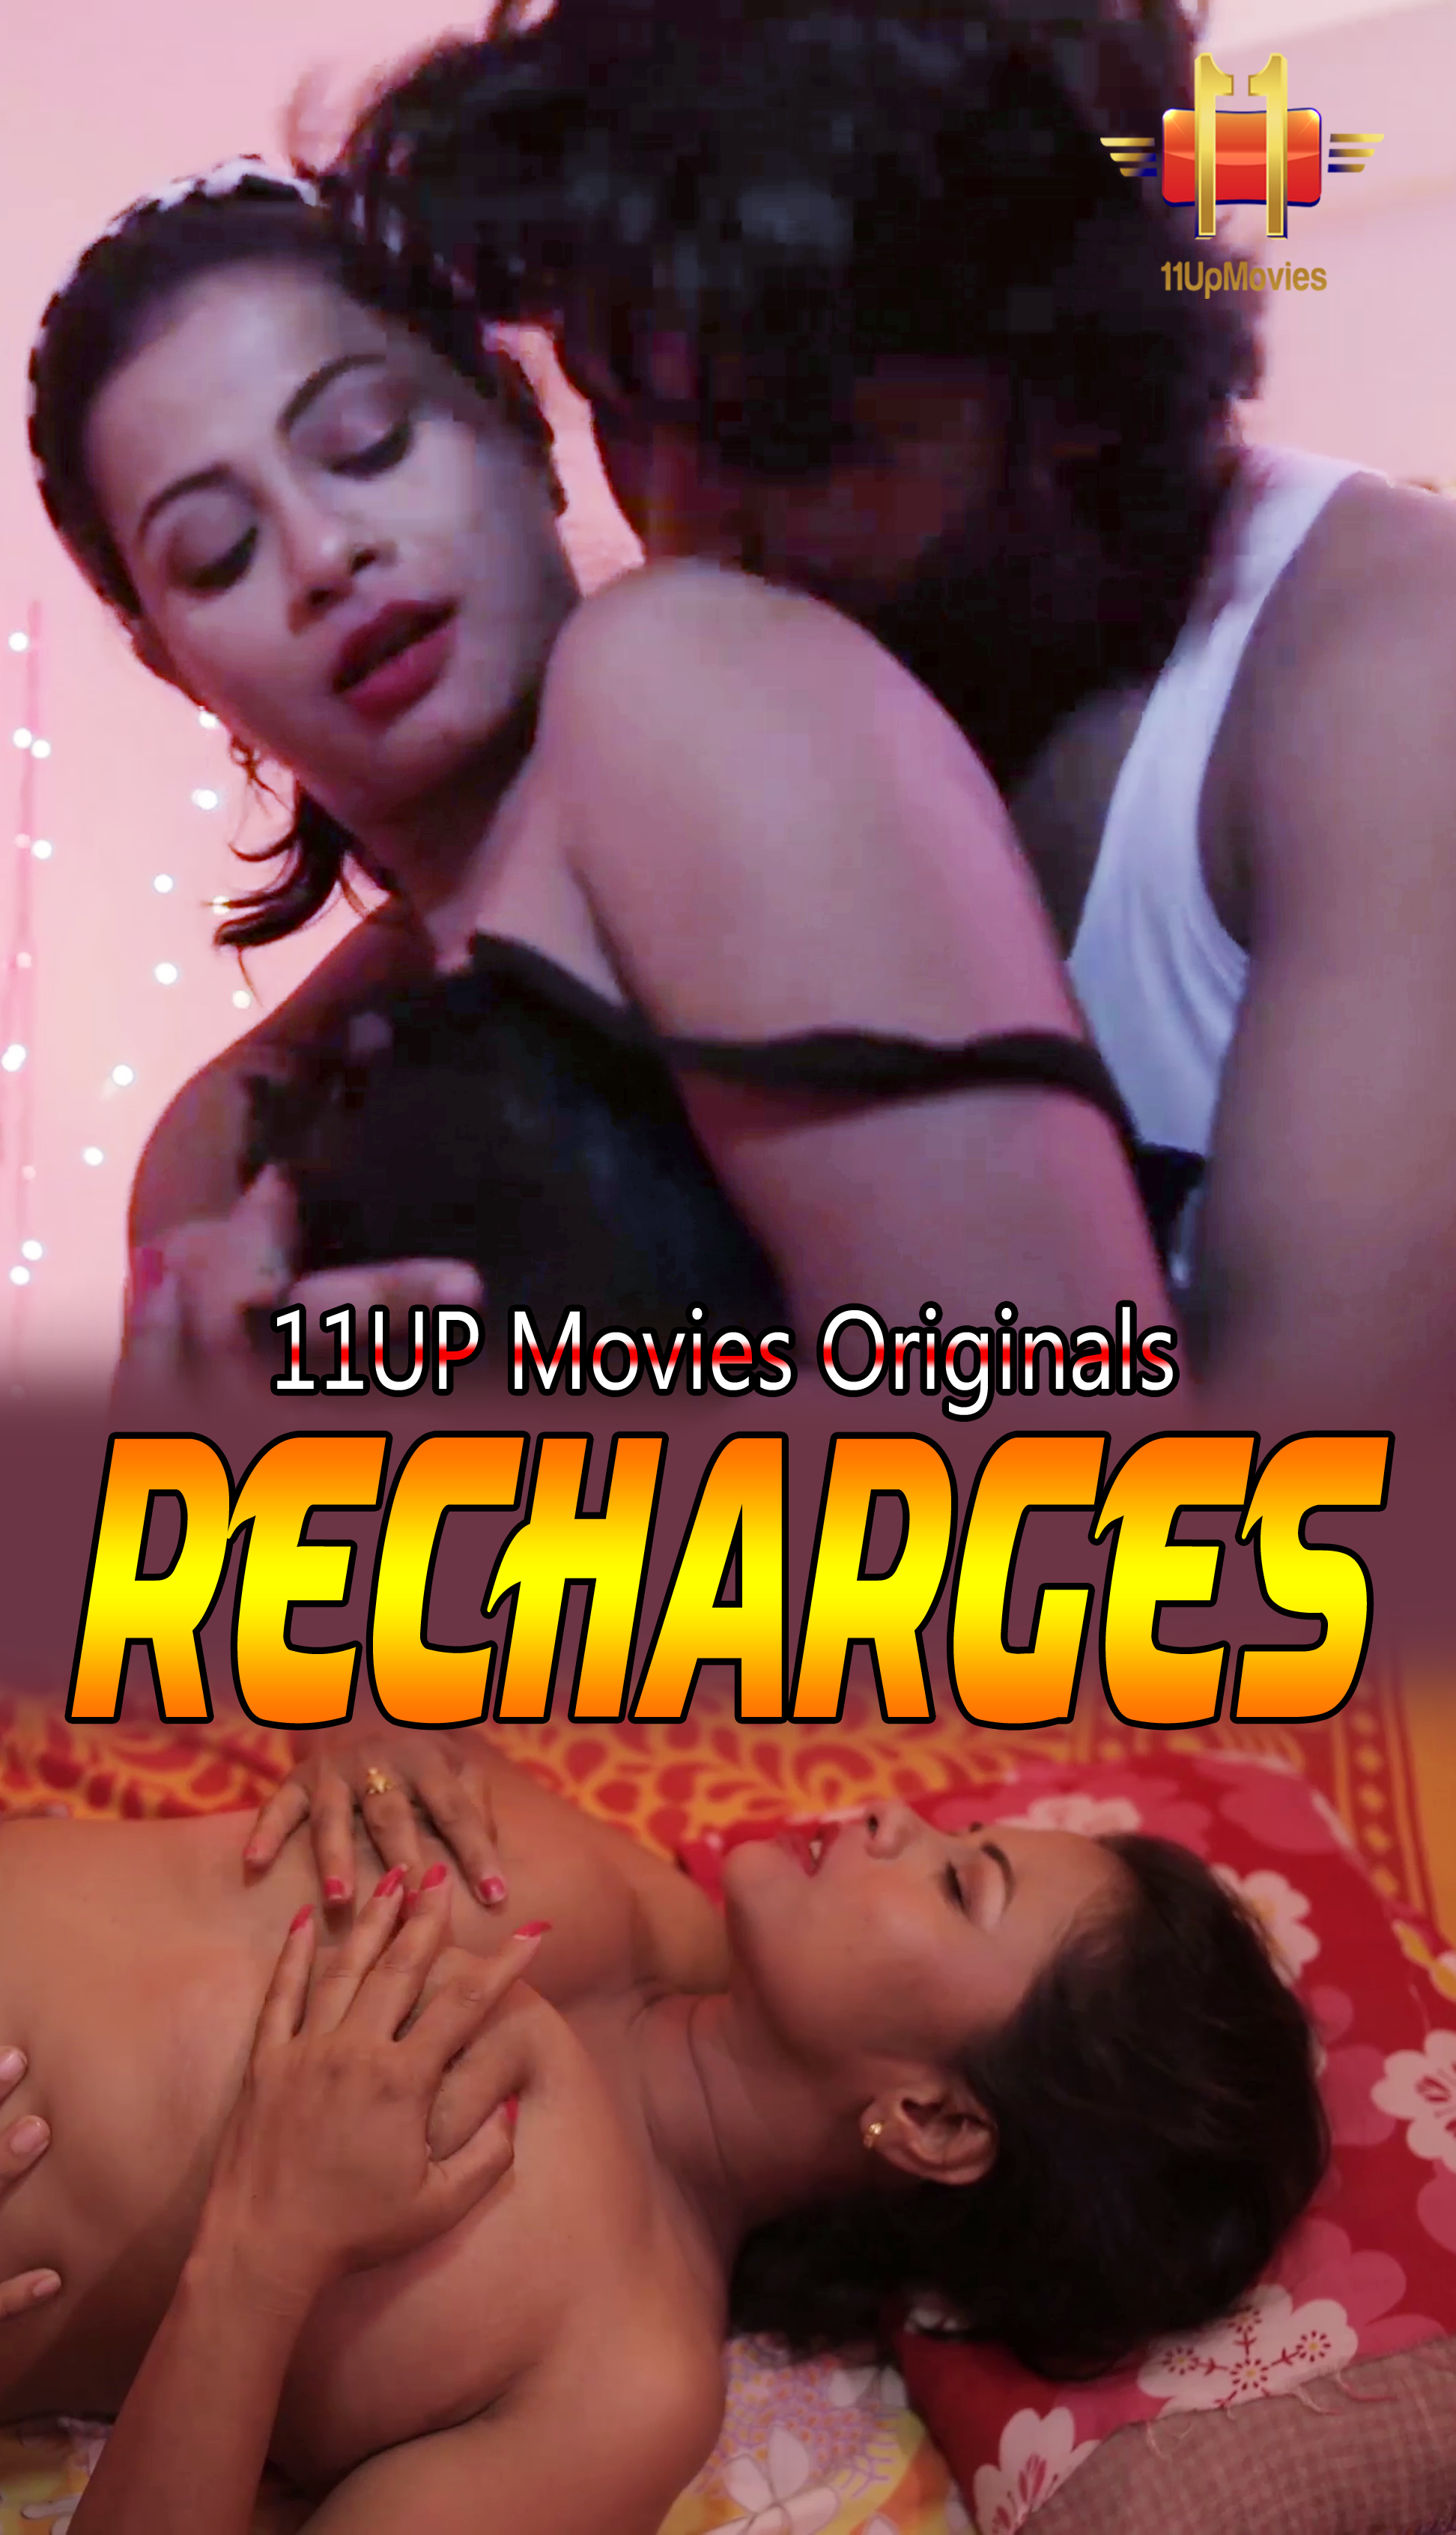 18+ Recharge 2020 S01 Hindi 11Upmovies Hot Web Series 720p HDRip 300MB x264 AAC